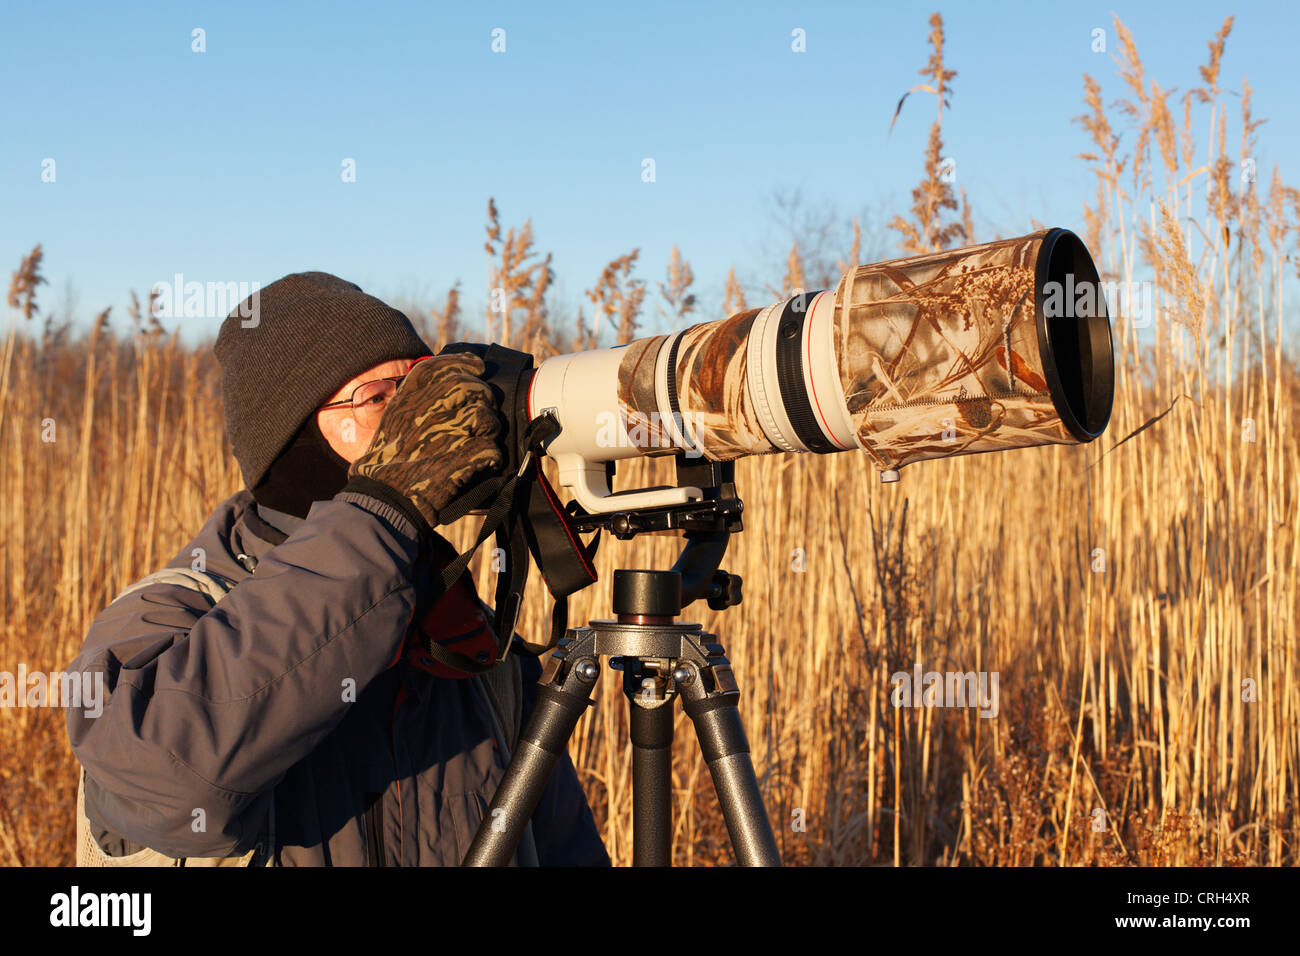 A wildlife nature photographer shooting with a super telephoto lens. - Stock Image